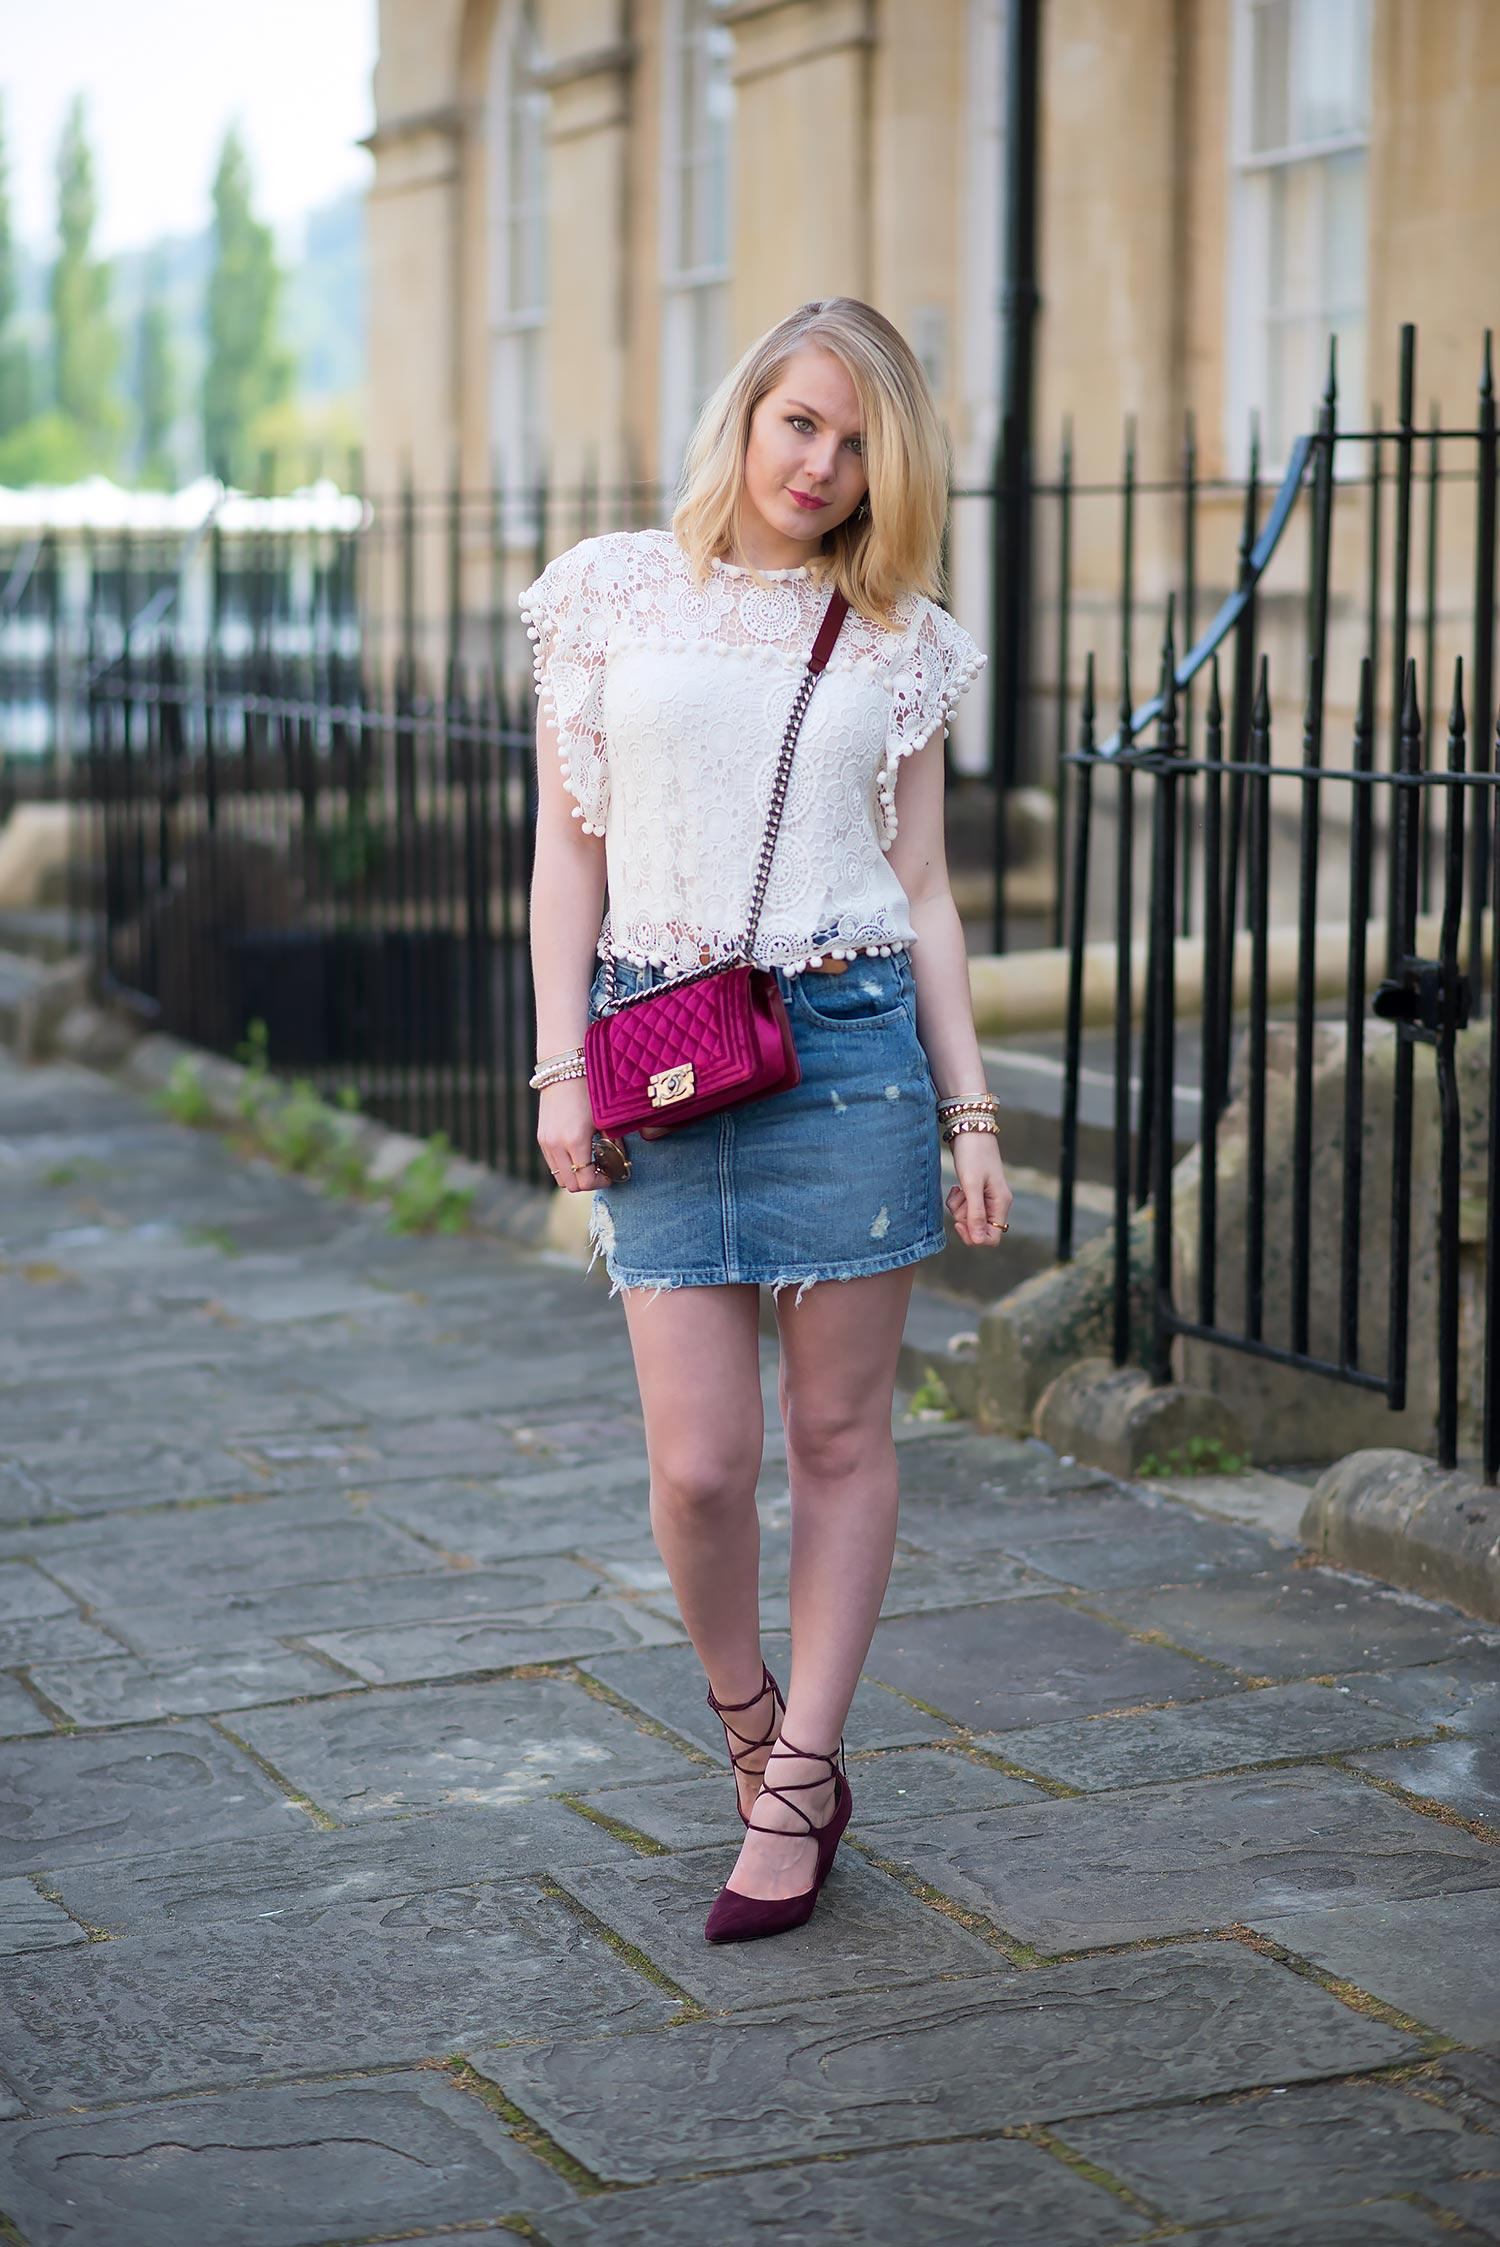 tularosa denim mini skirt and lace top outfit